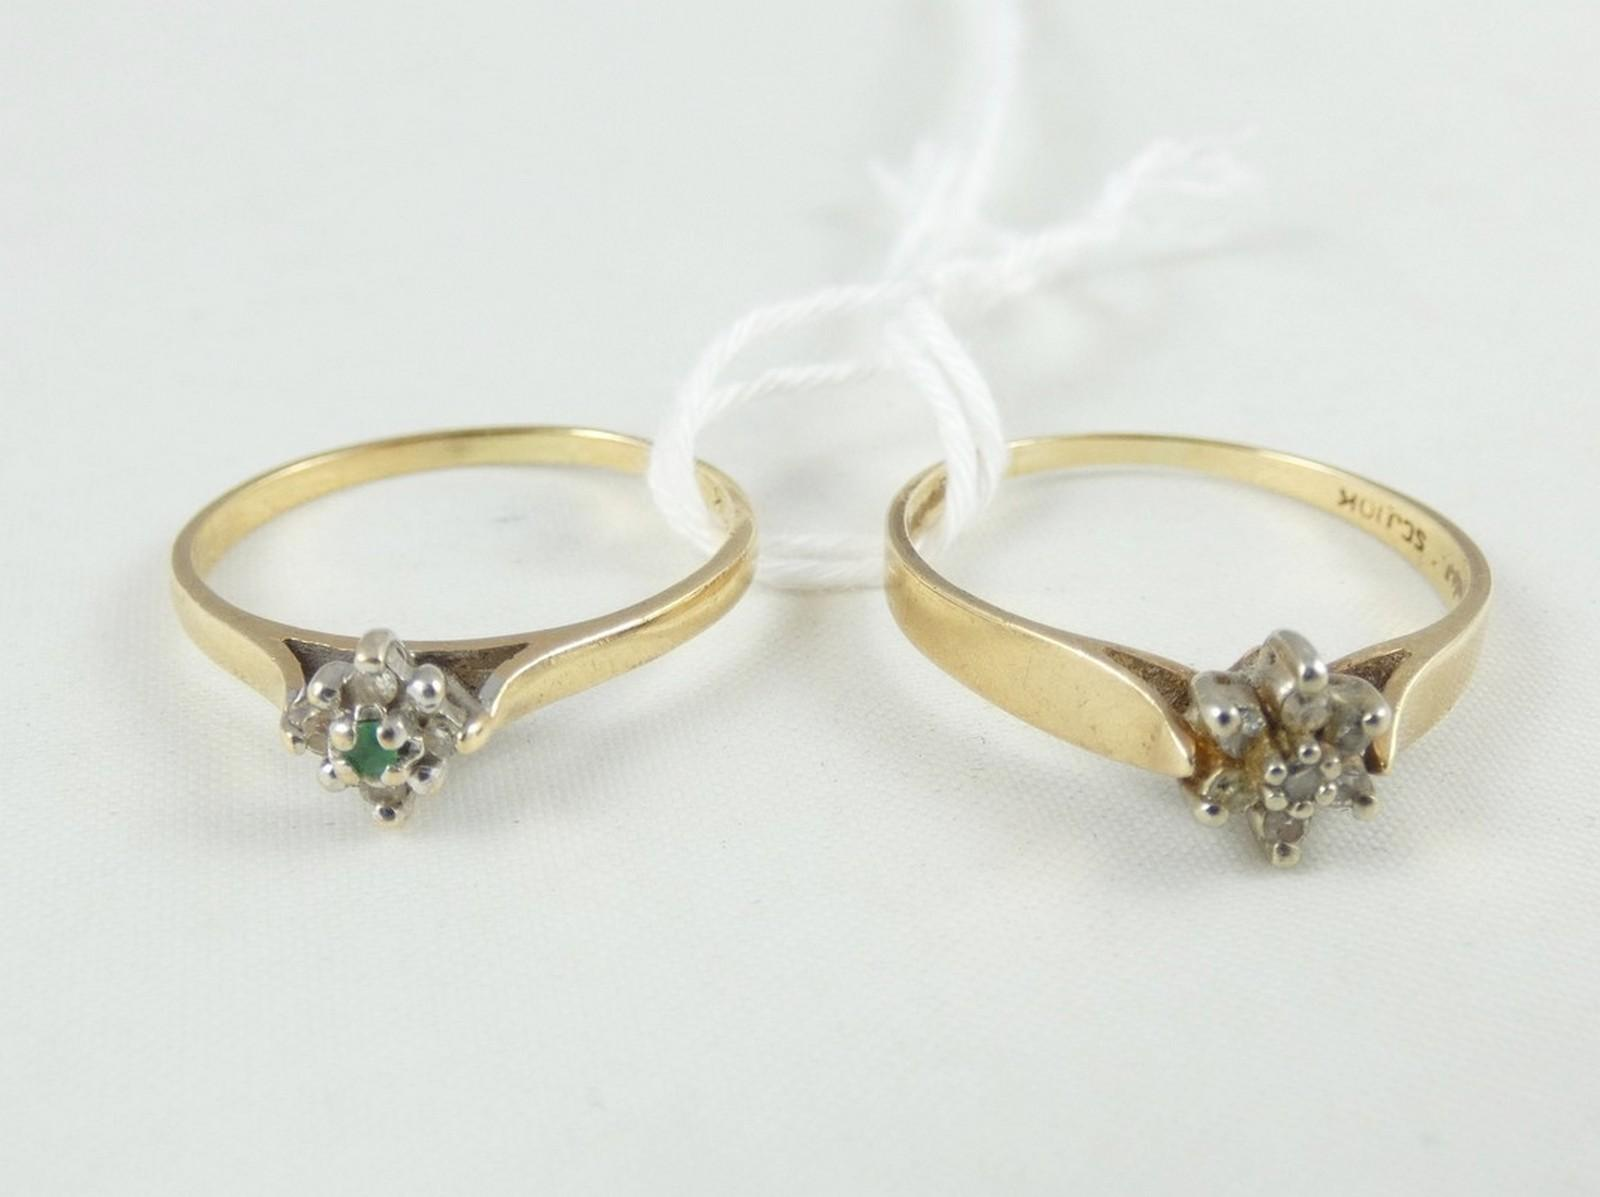 TWO DAINTY GOLD RINGS